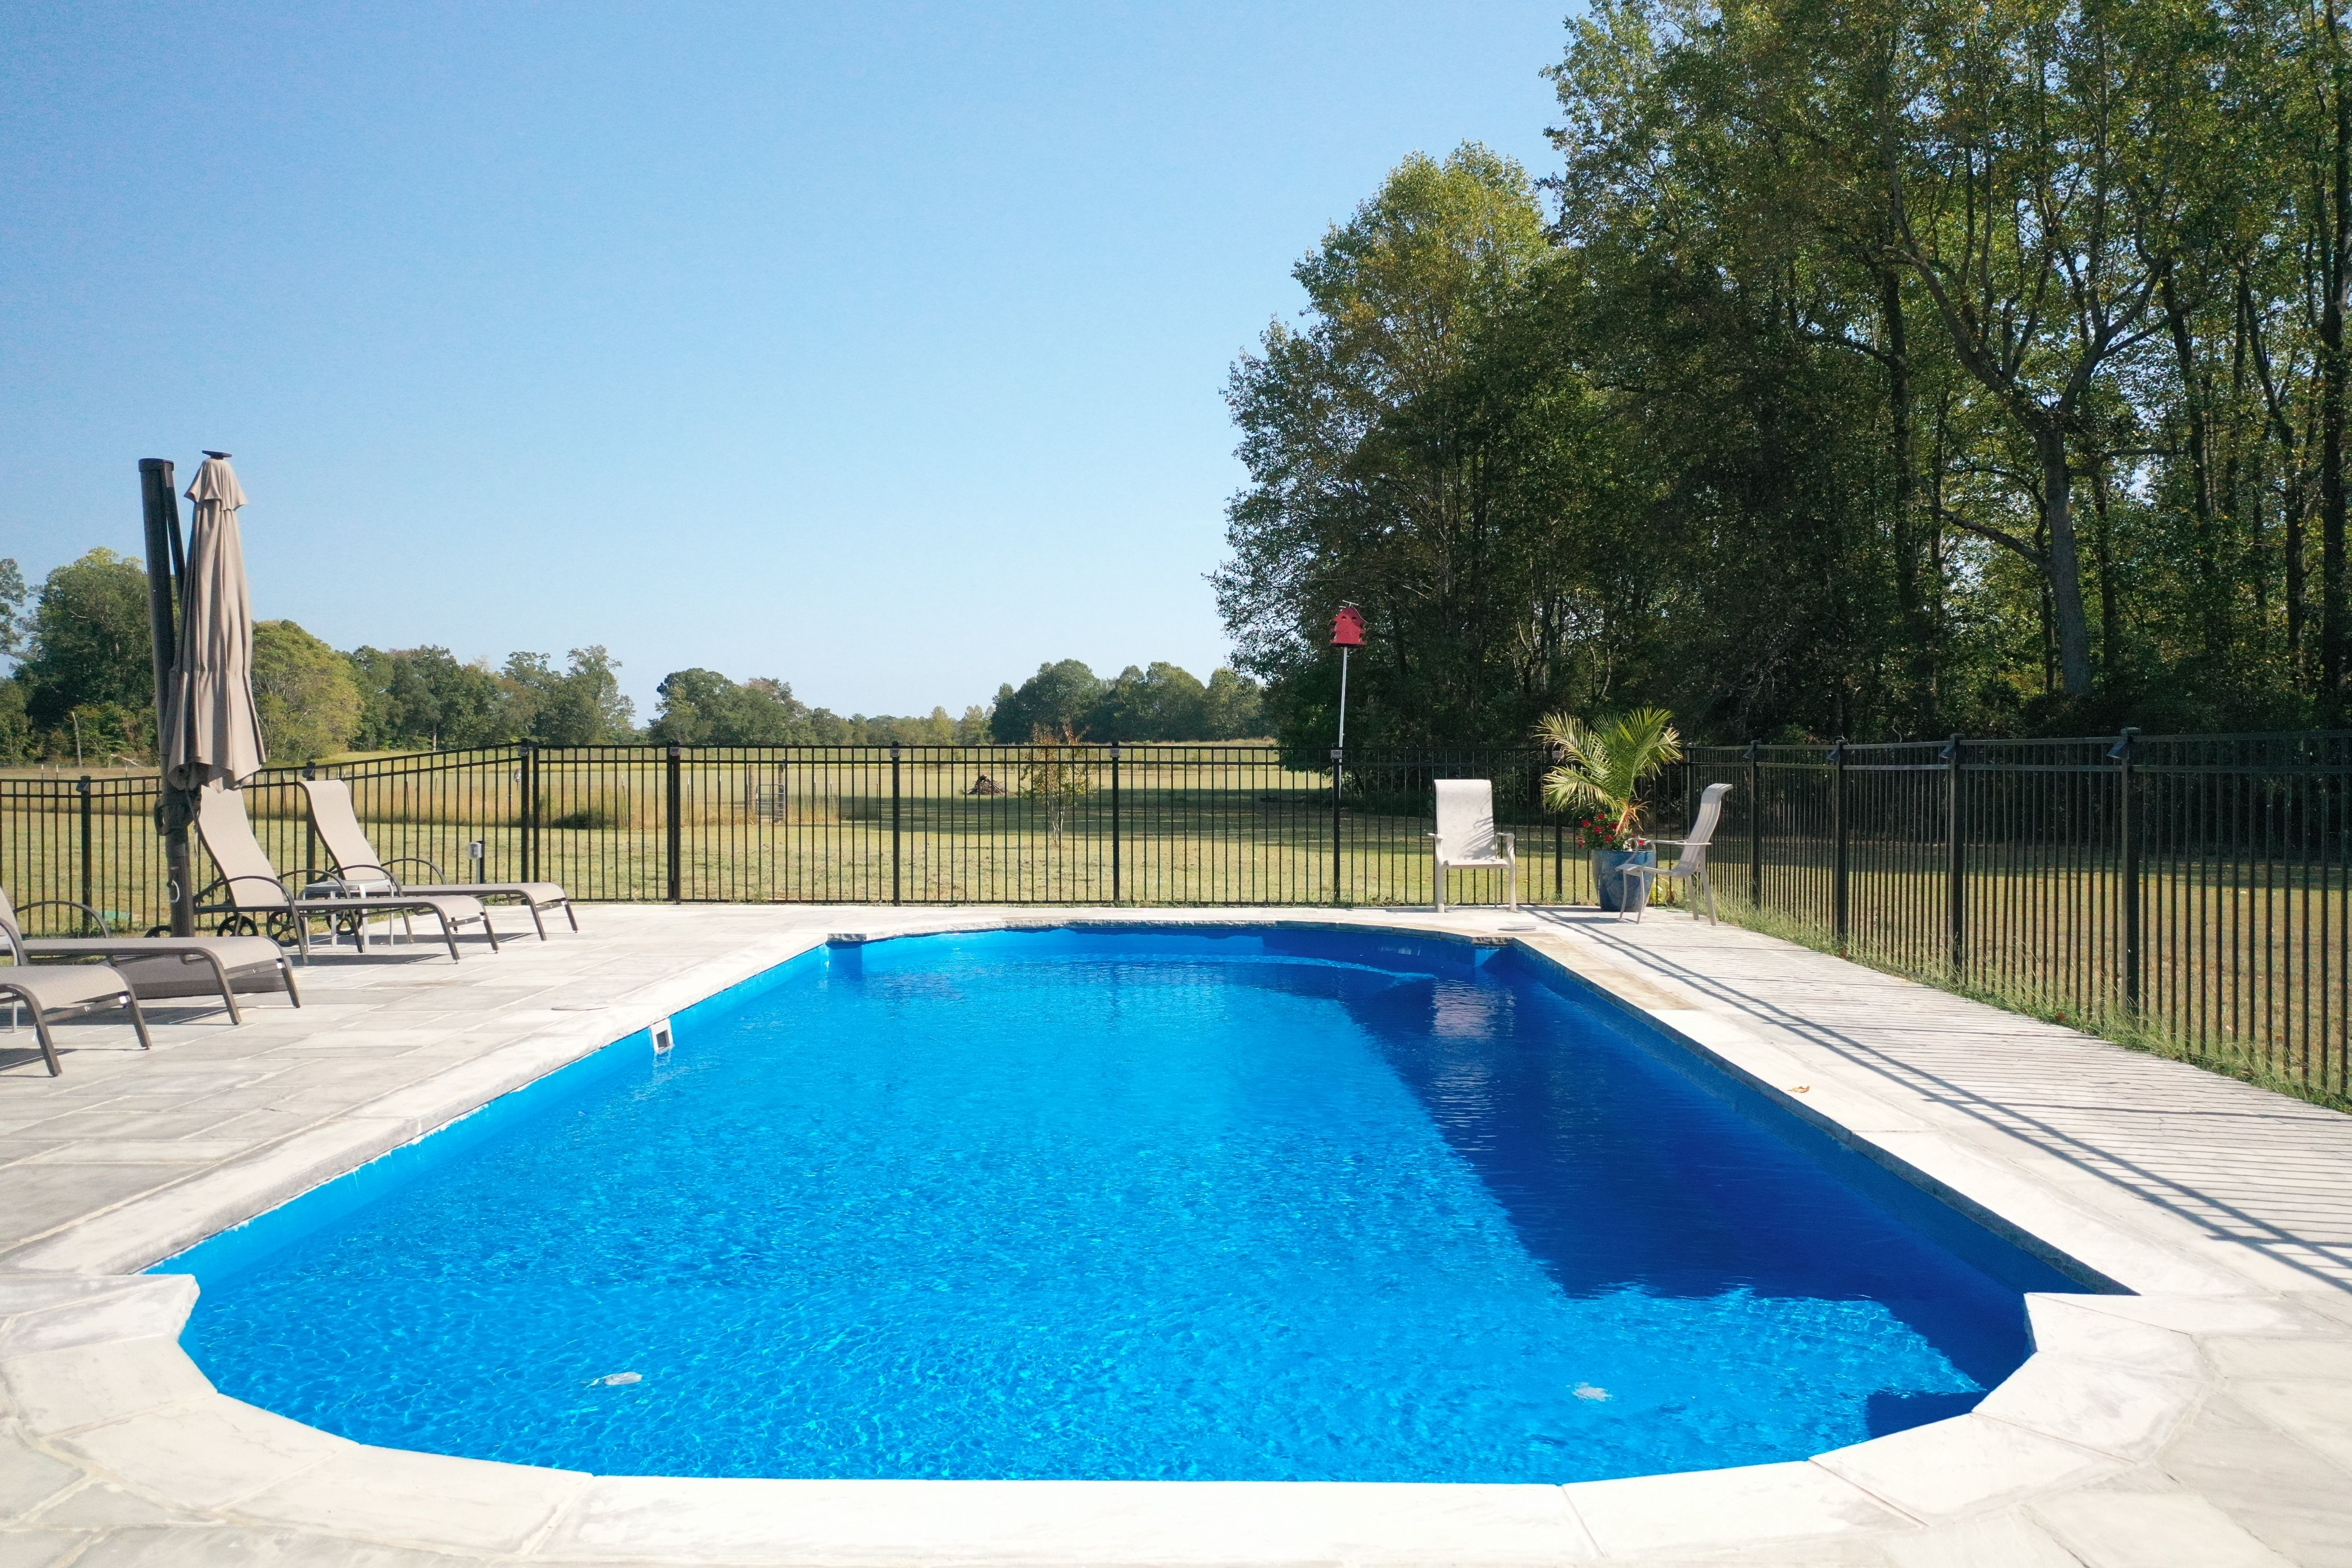 Building A Swimming Pool In Charlottesville Virginia Here S What You Should Know Inground Pool Installation Pool Cost Swimming Pool Cost